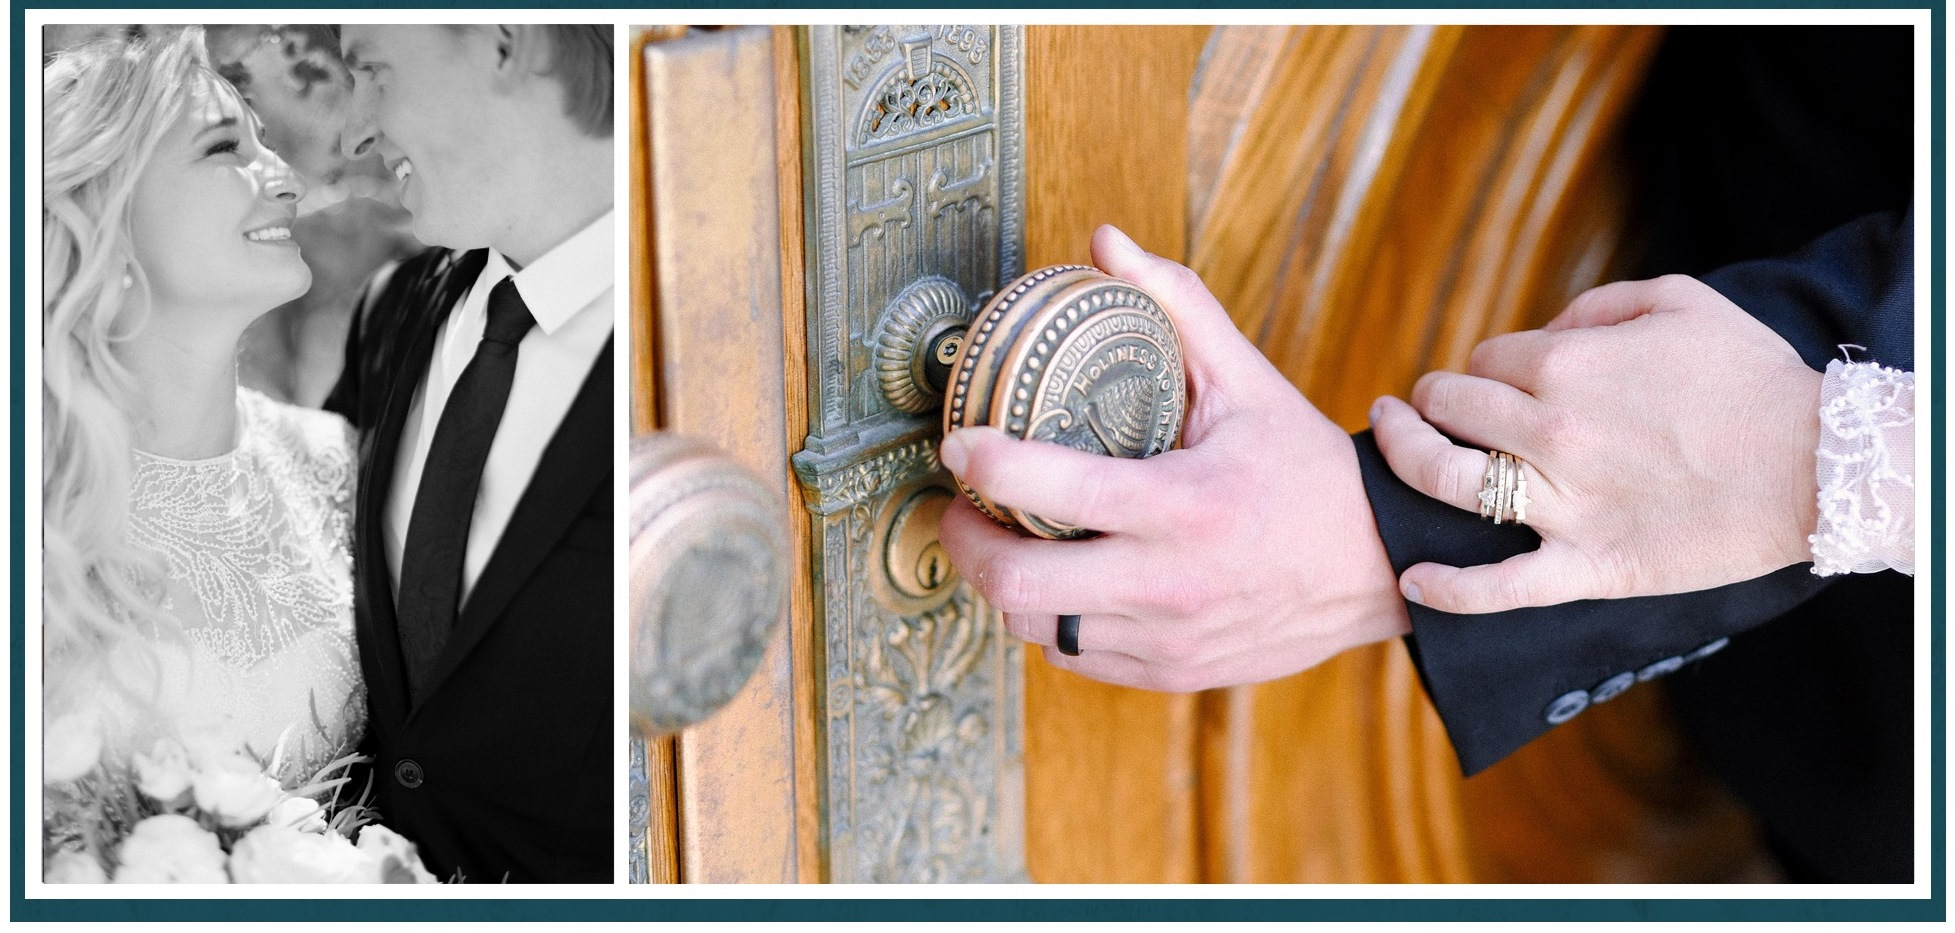 A-Truckers-Love-bride-and-groom-and-temple-door-knob